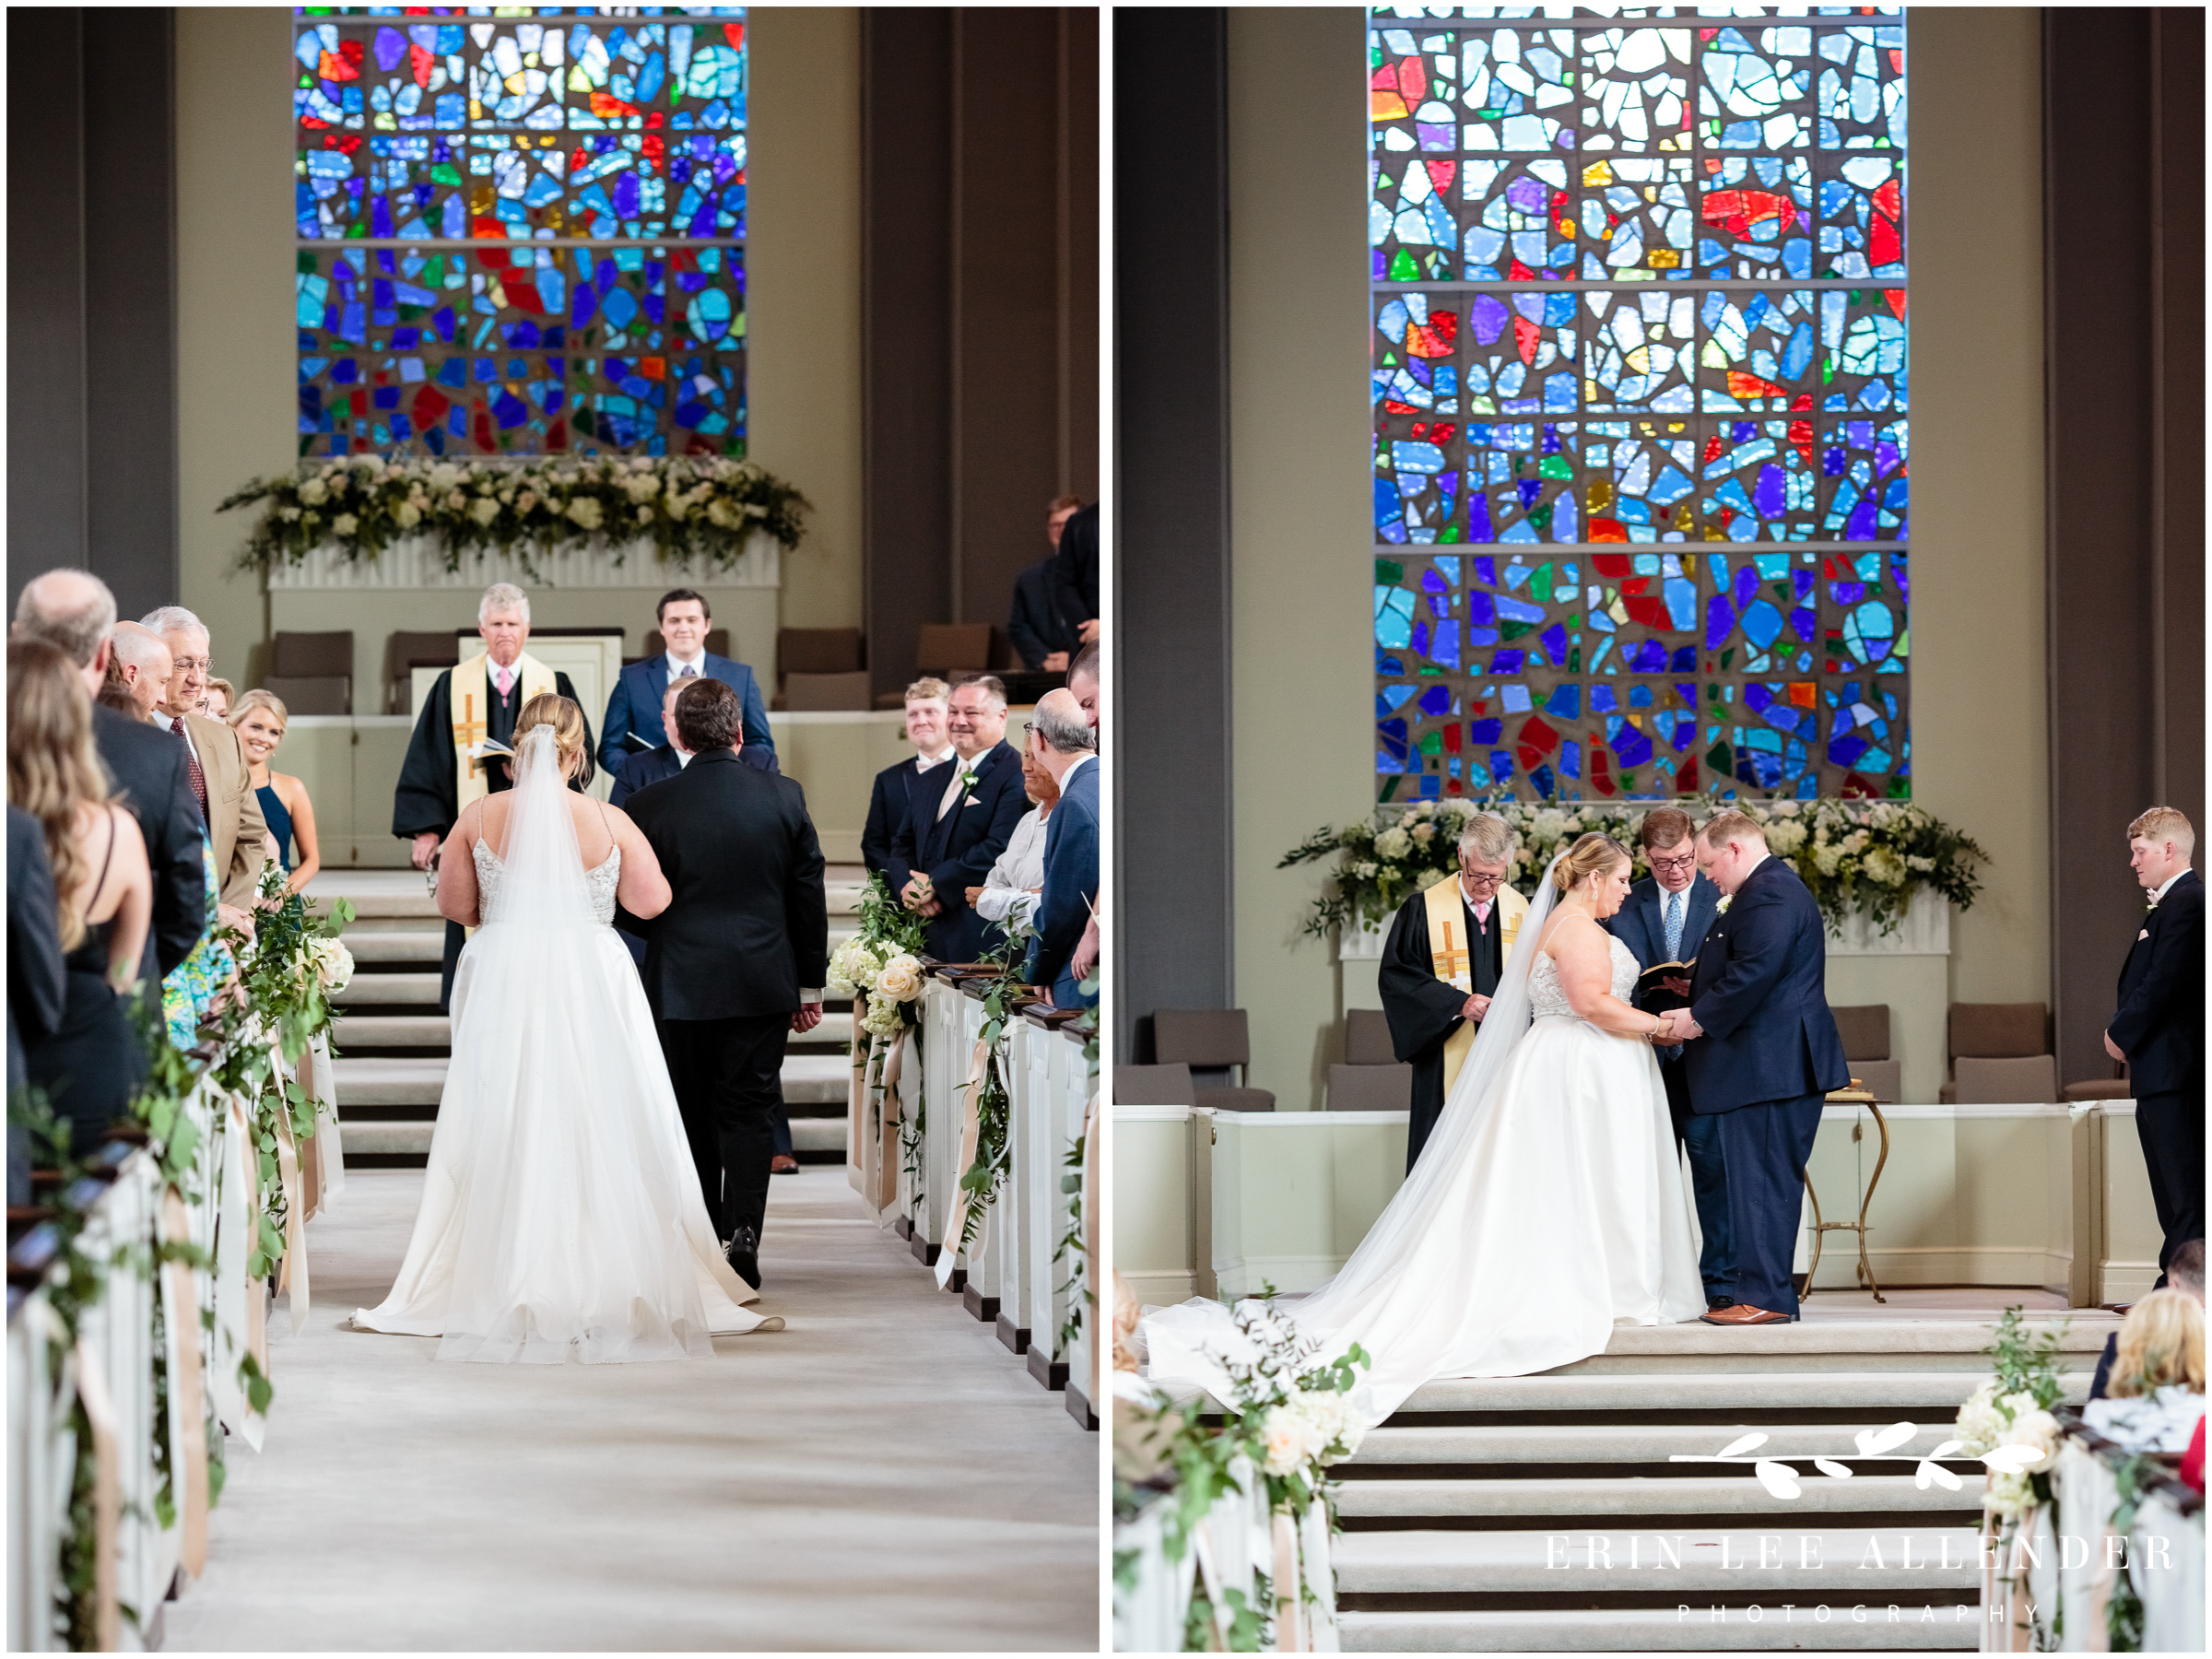 Immanuel-baptist-nashville-wedding